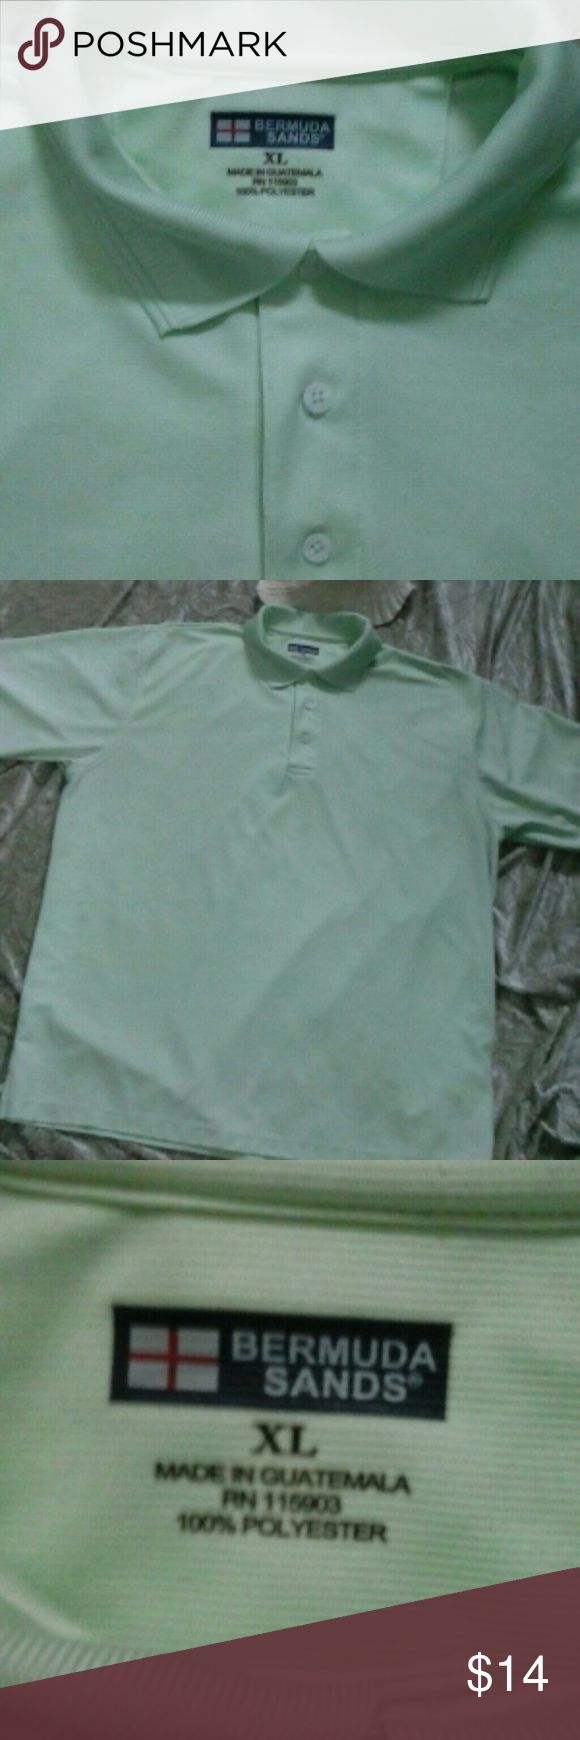 """LN Bermuda Sands Golf Shirt XL Shortsleeve Like New Bermuda Sands Golf Shirt XL. Has Bermuda Sands logo on right sleeve. Color Light mint green, 3 button down front with collar.Flat lay measures pit to pit 27"""", length from arm pit to hem 20"""" thanks for stopping by and feel free to ask questions. Bermuda Sands  Shirts Polos"""